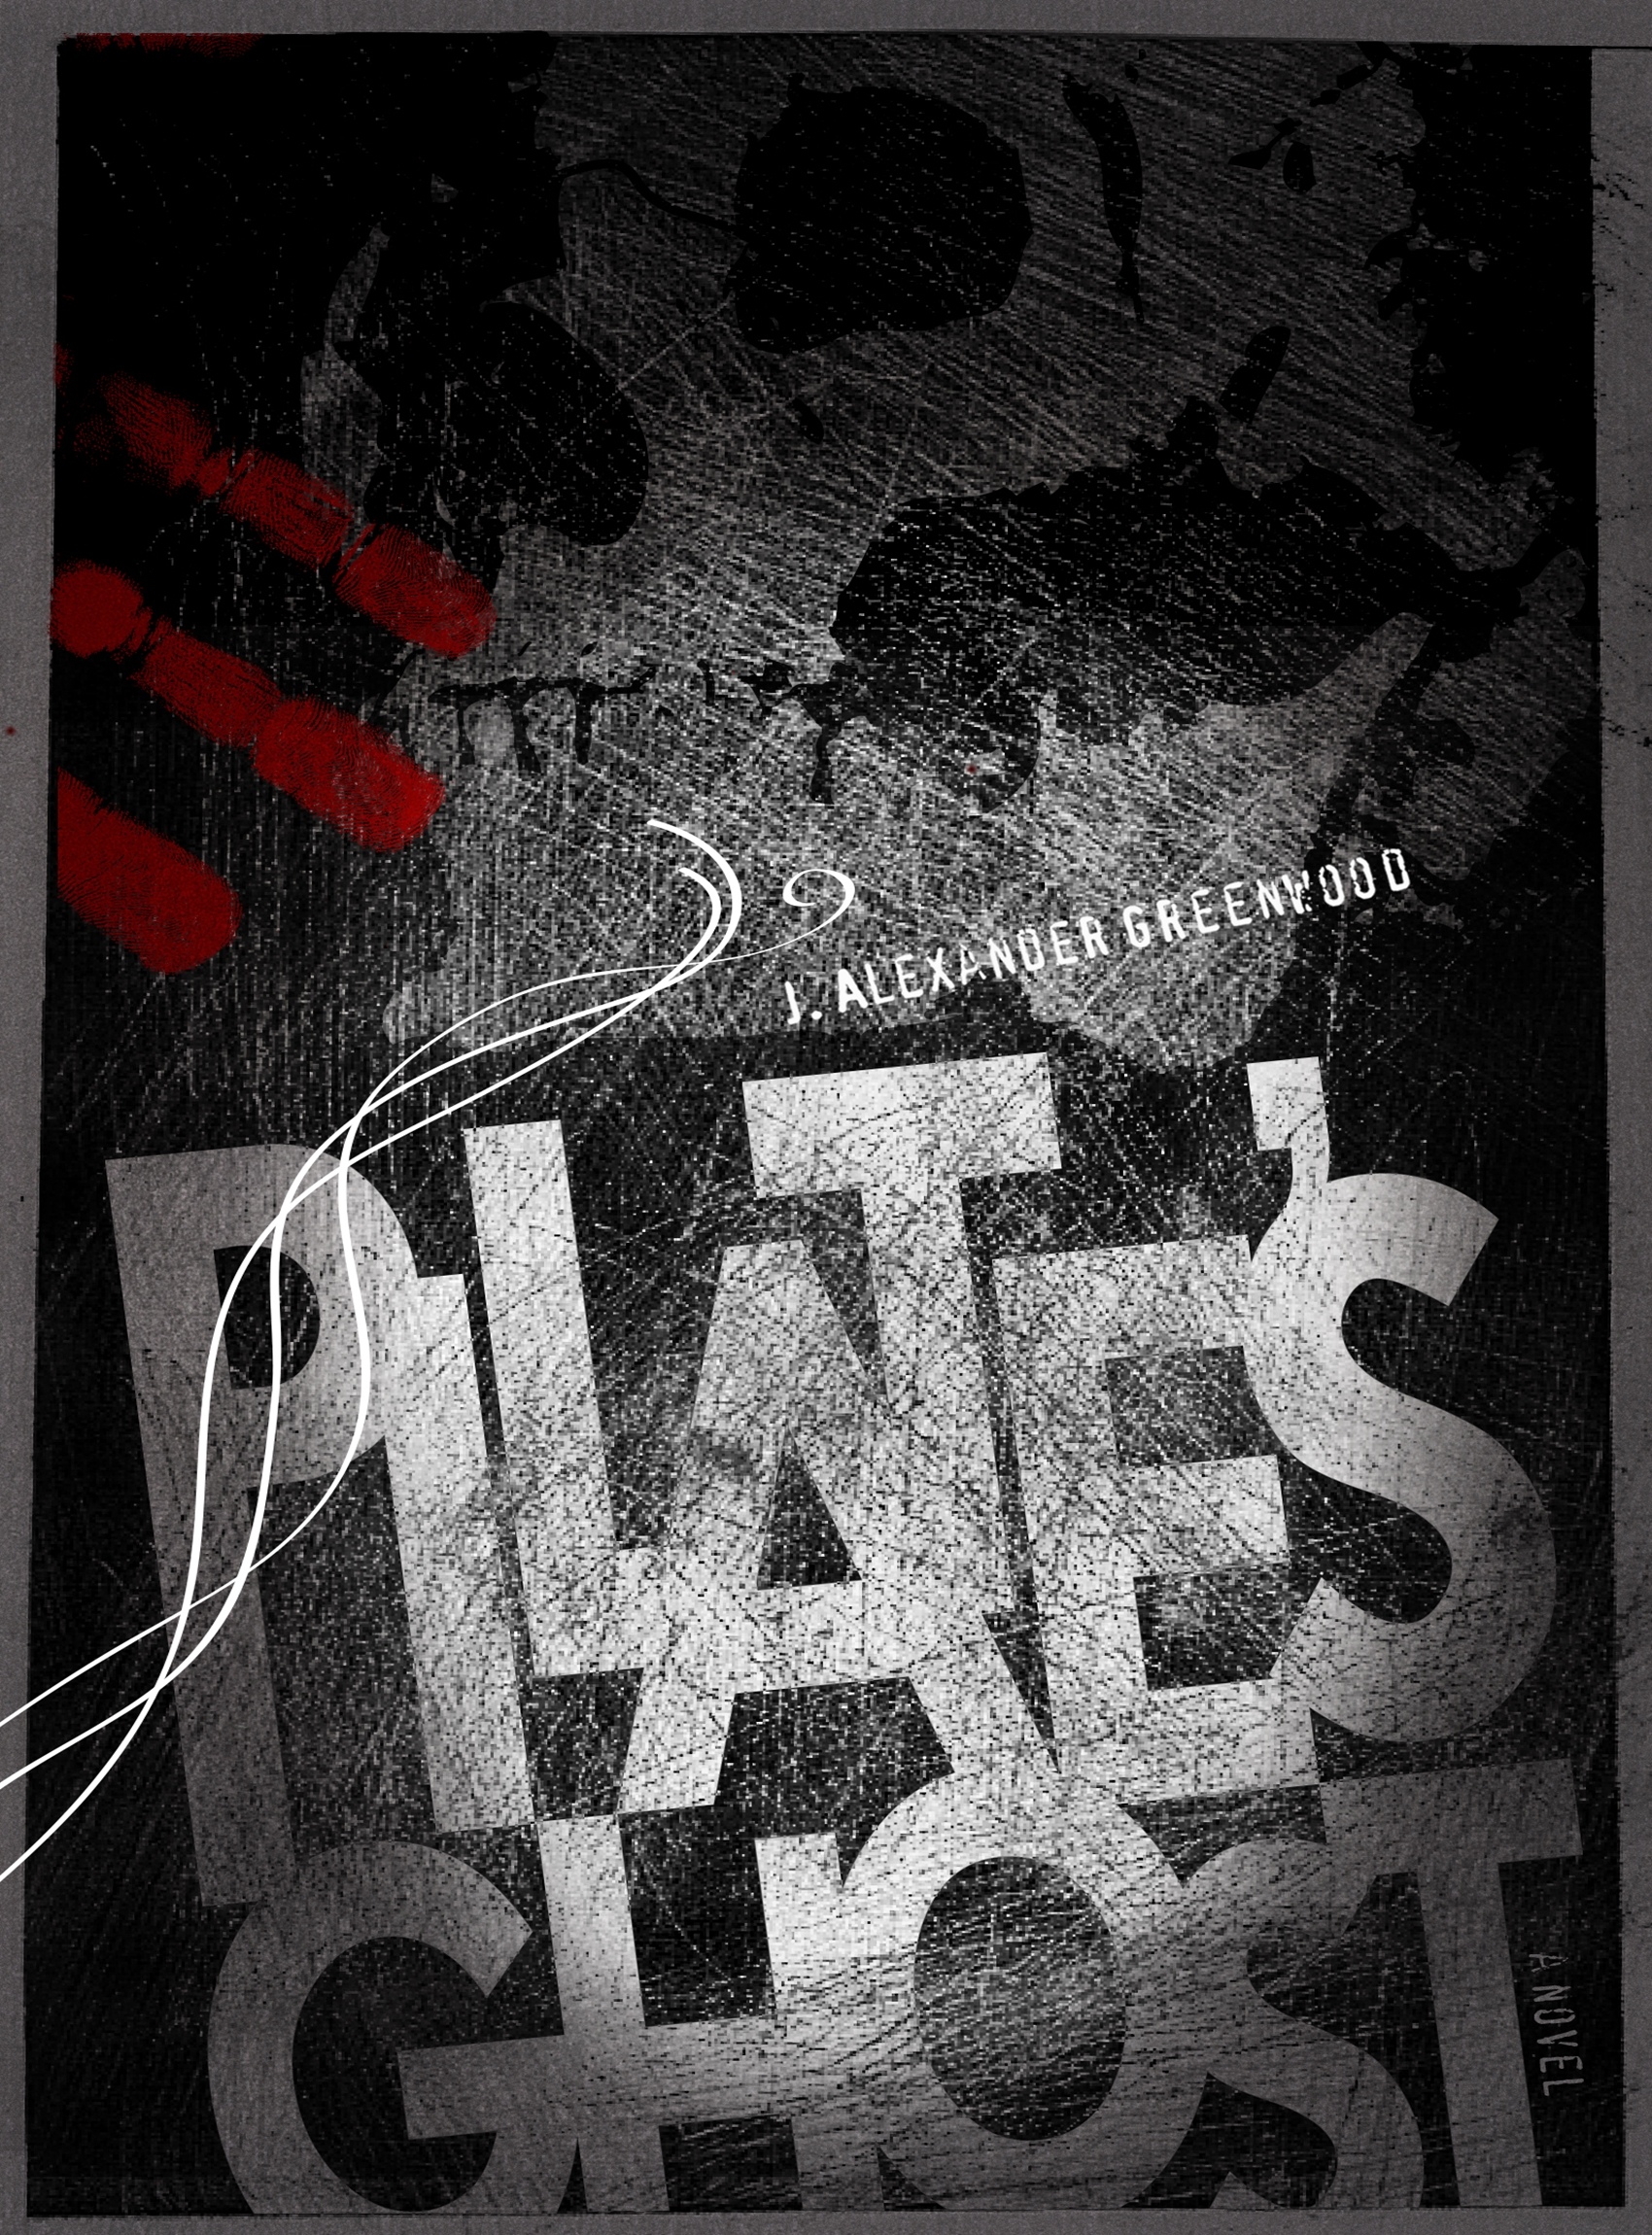 Pilate's Ghost cover by artist David A. Terrill